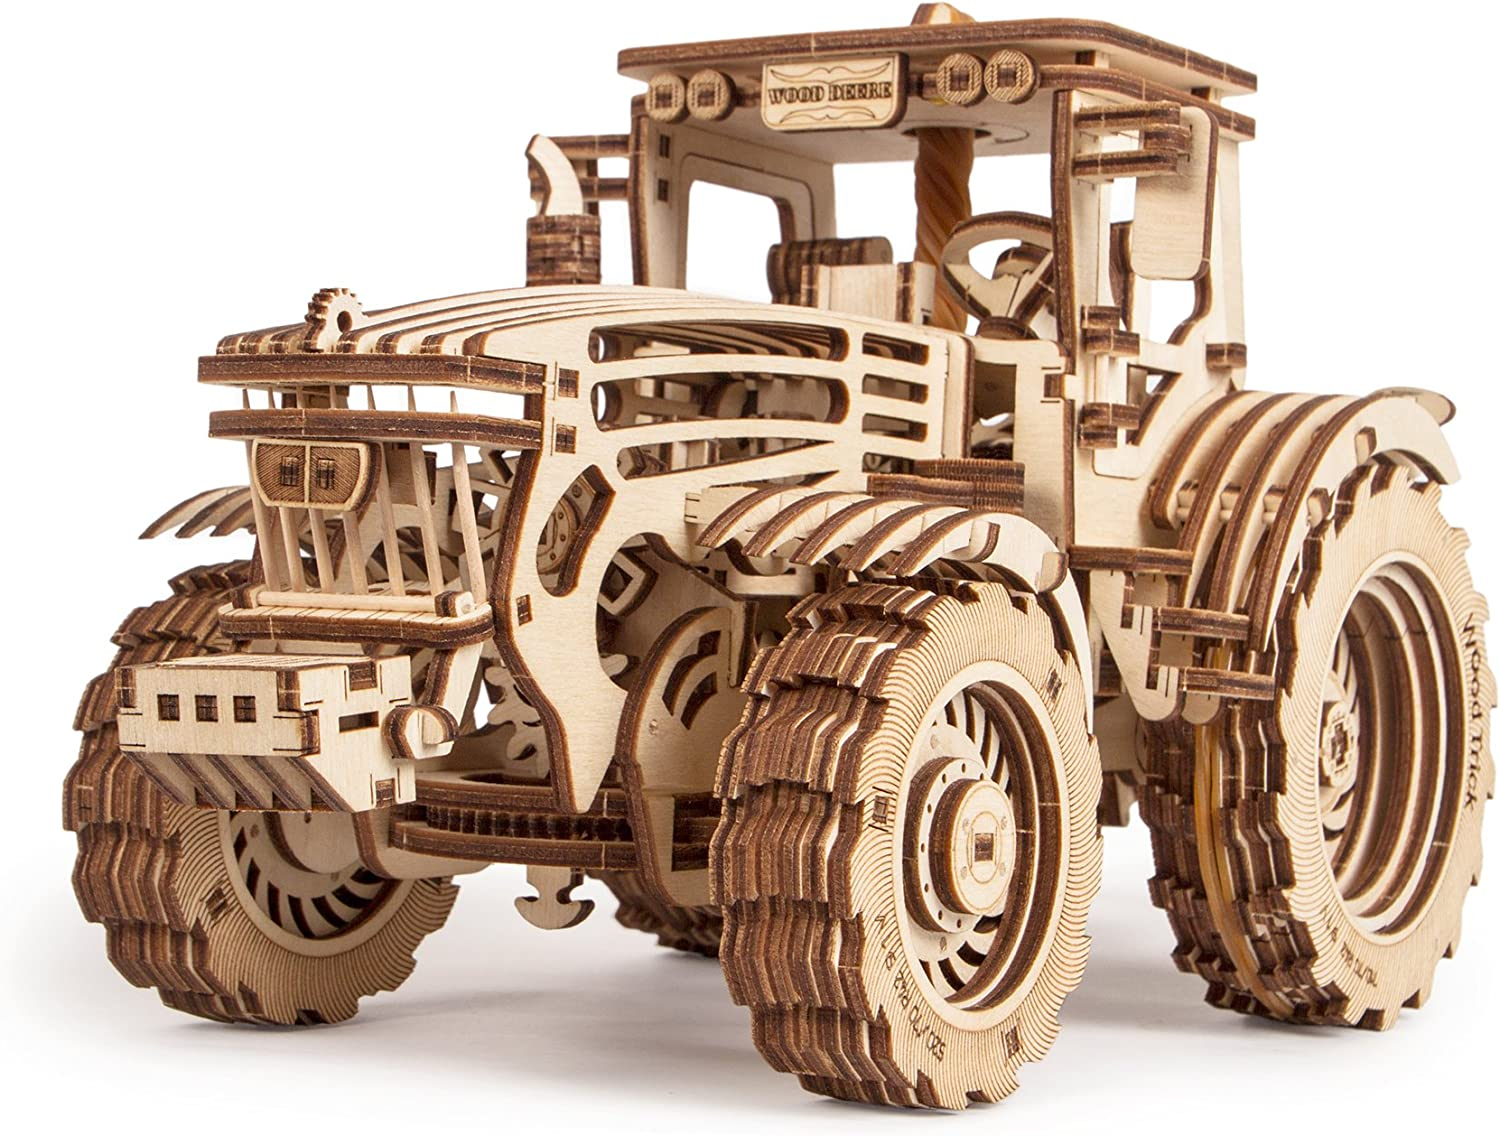 Wood Trick Wooden Toy Tractor Friction Powered 2 Speeds, 3D Tractor Puzzle Wood Model Mechanical Model 3D Wooden Puzzle, Assembly Toys, ECO Best